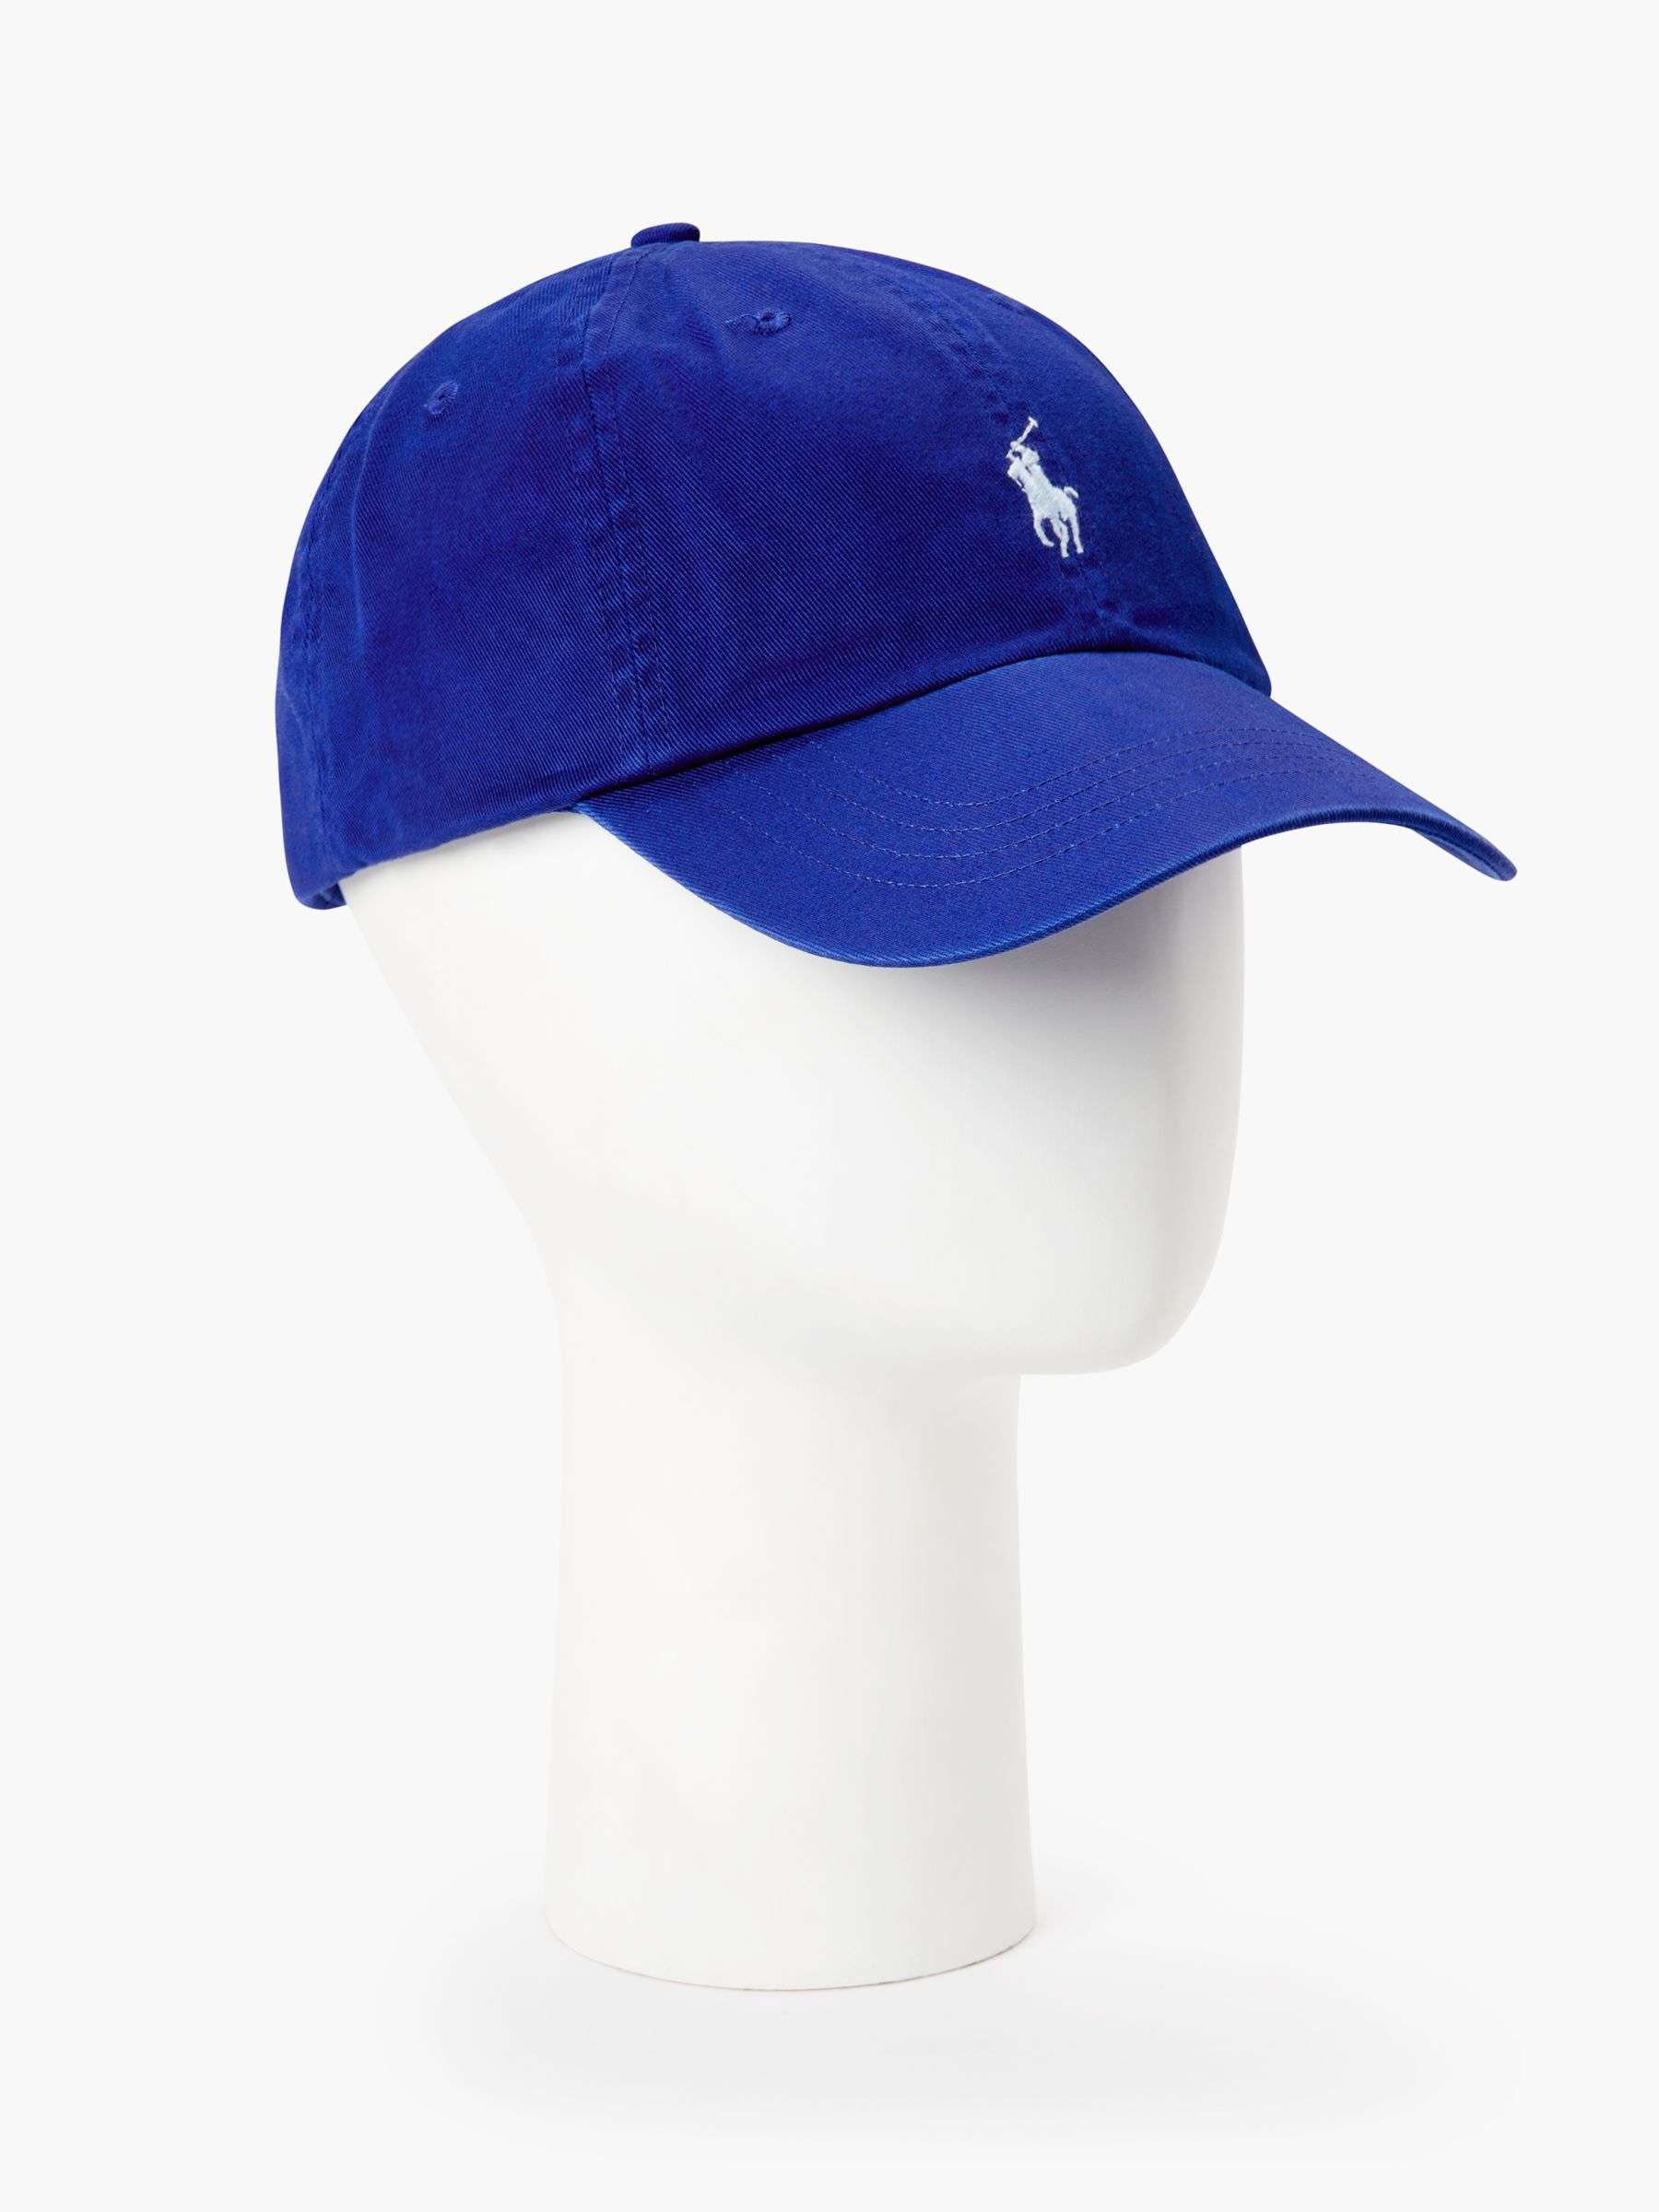 Unicorn Simple Baseball Caps For Teen Girls Timeless Great For Outdoor Hiking Visor Hats